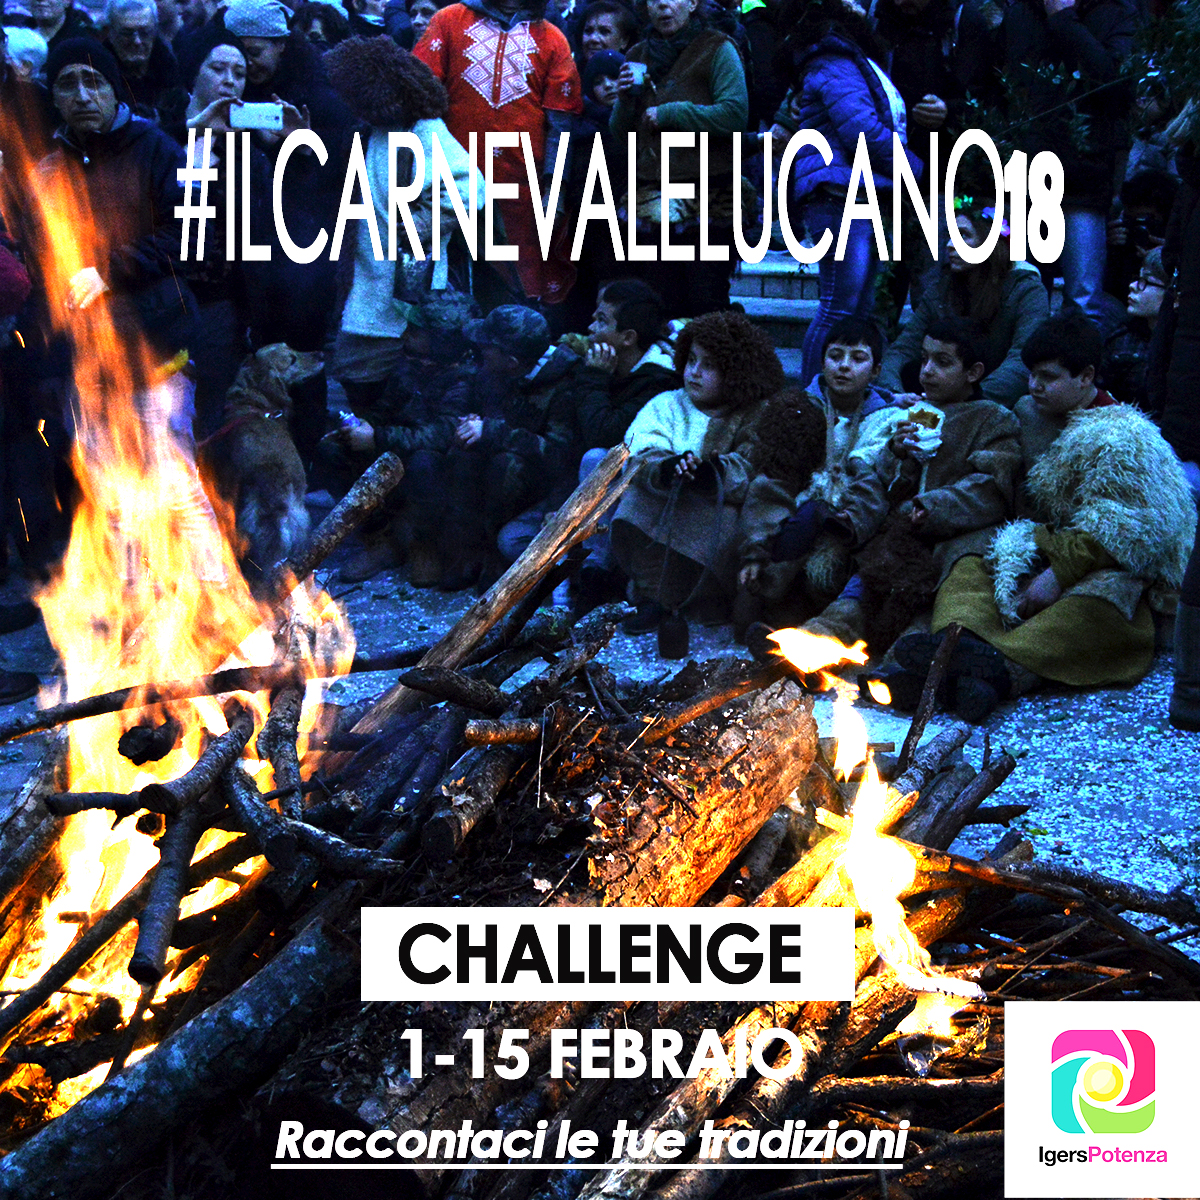 Carnevale Lucano 2018 - challenge